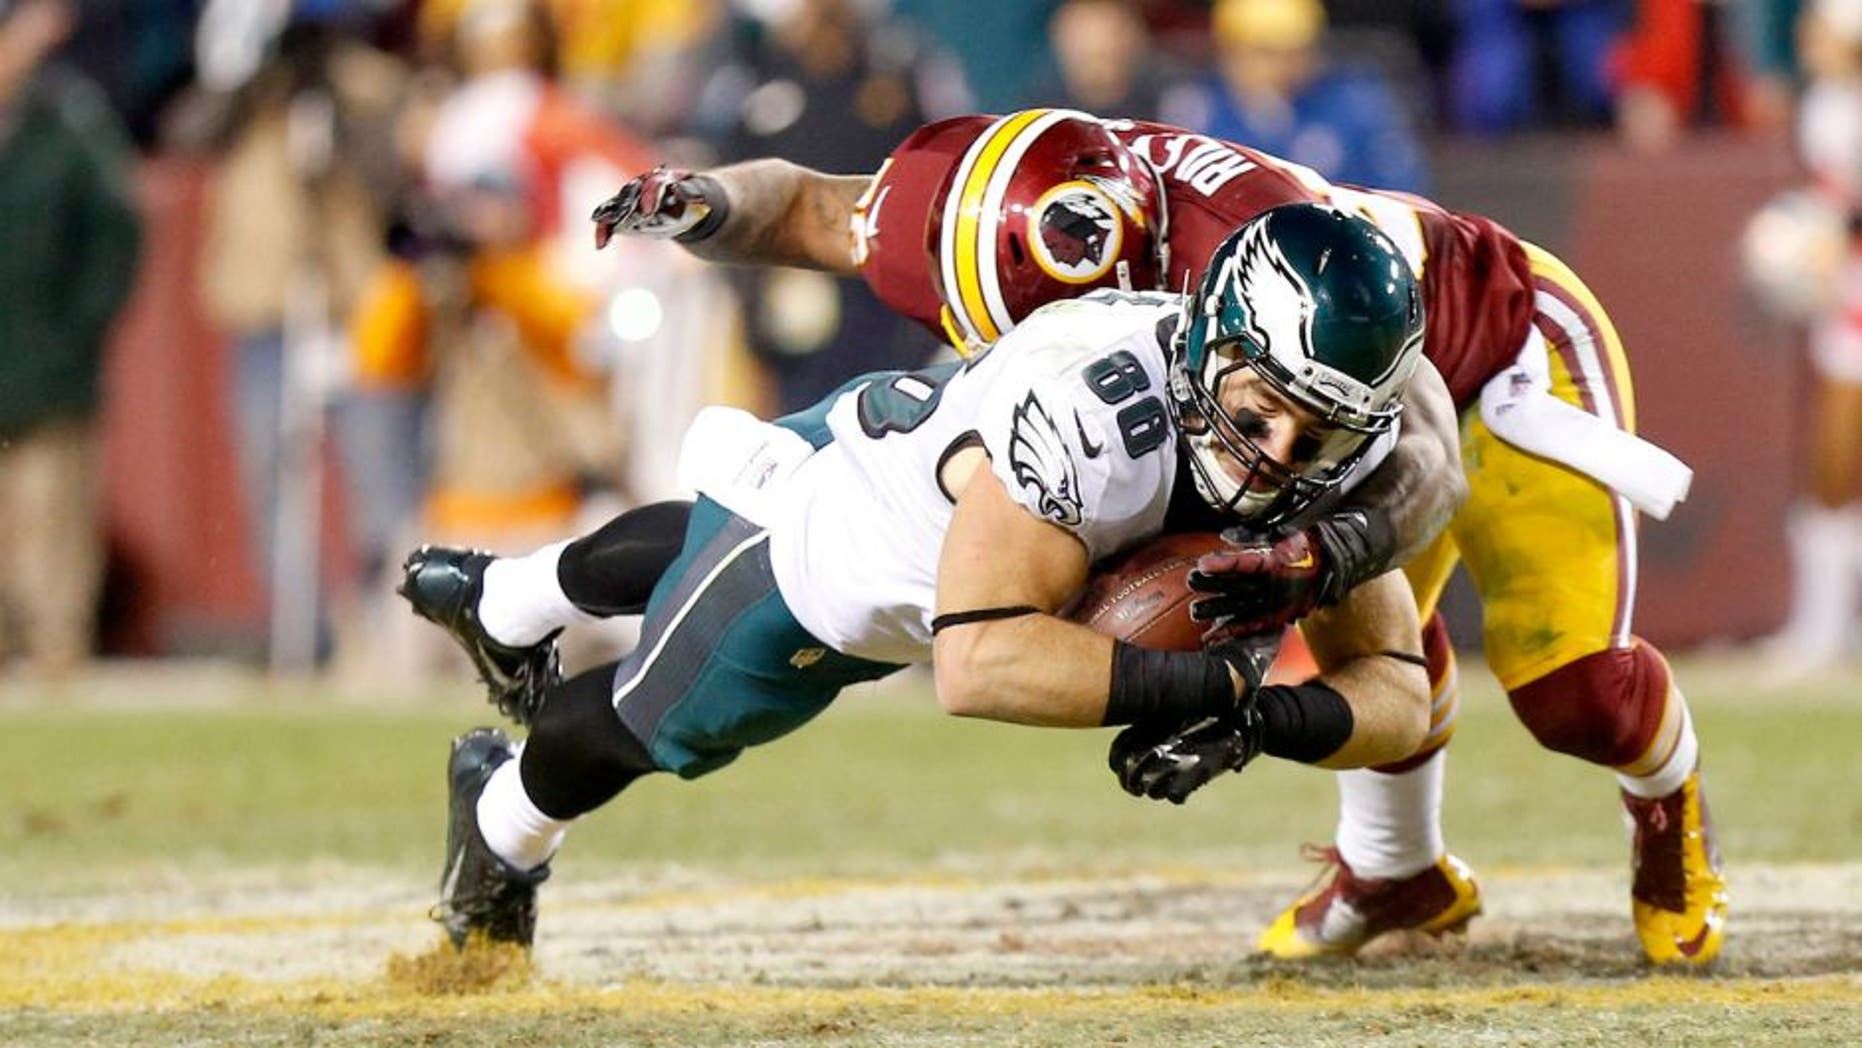 Dec 20, 2014; Landover, MD, USA; Philadelphia Eagles tight end Zach Ertz (86) catches the ball as Washington Redskins inside linebacker Perry Riley (56) tackles the fourth quarter at FedEx Field. The Redskins won 27-24. Mandatory Credit: Geoff Burke-USA TODAY Sports